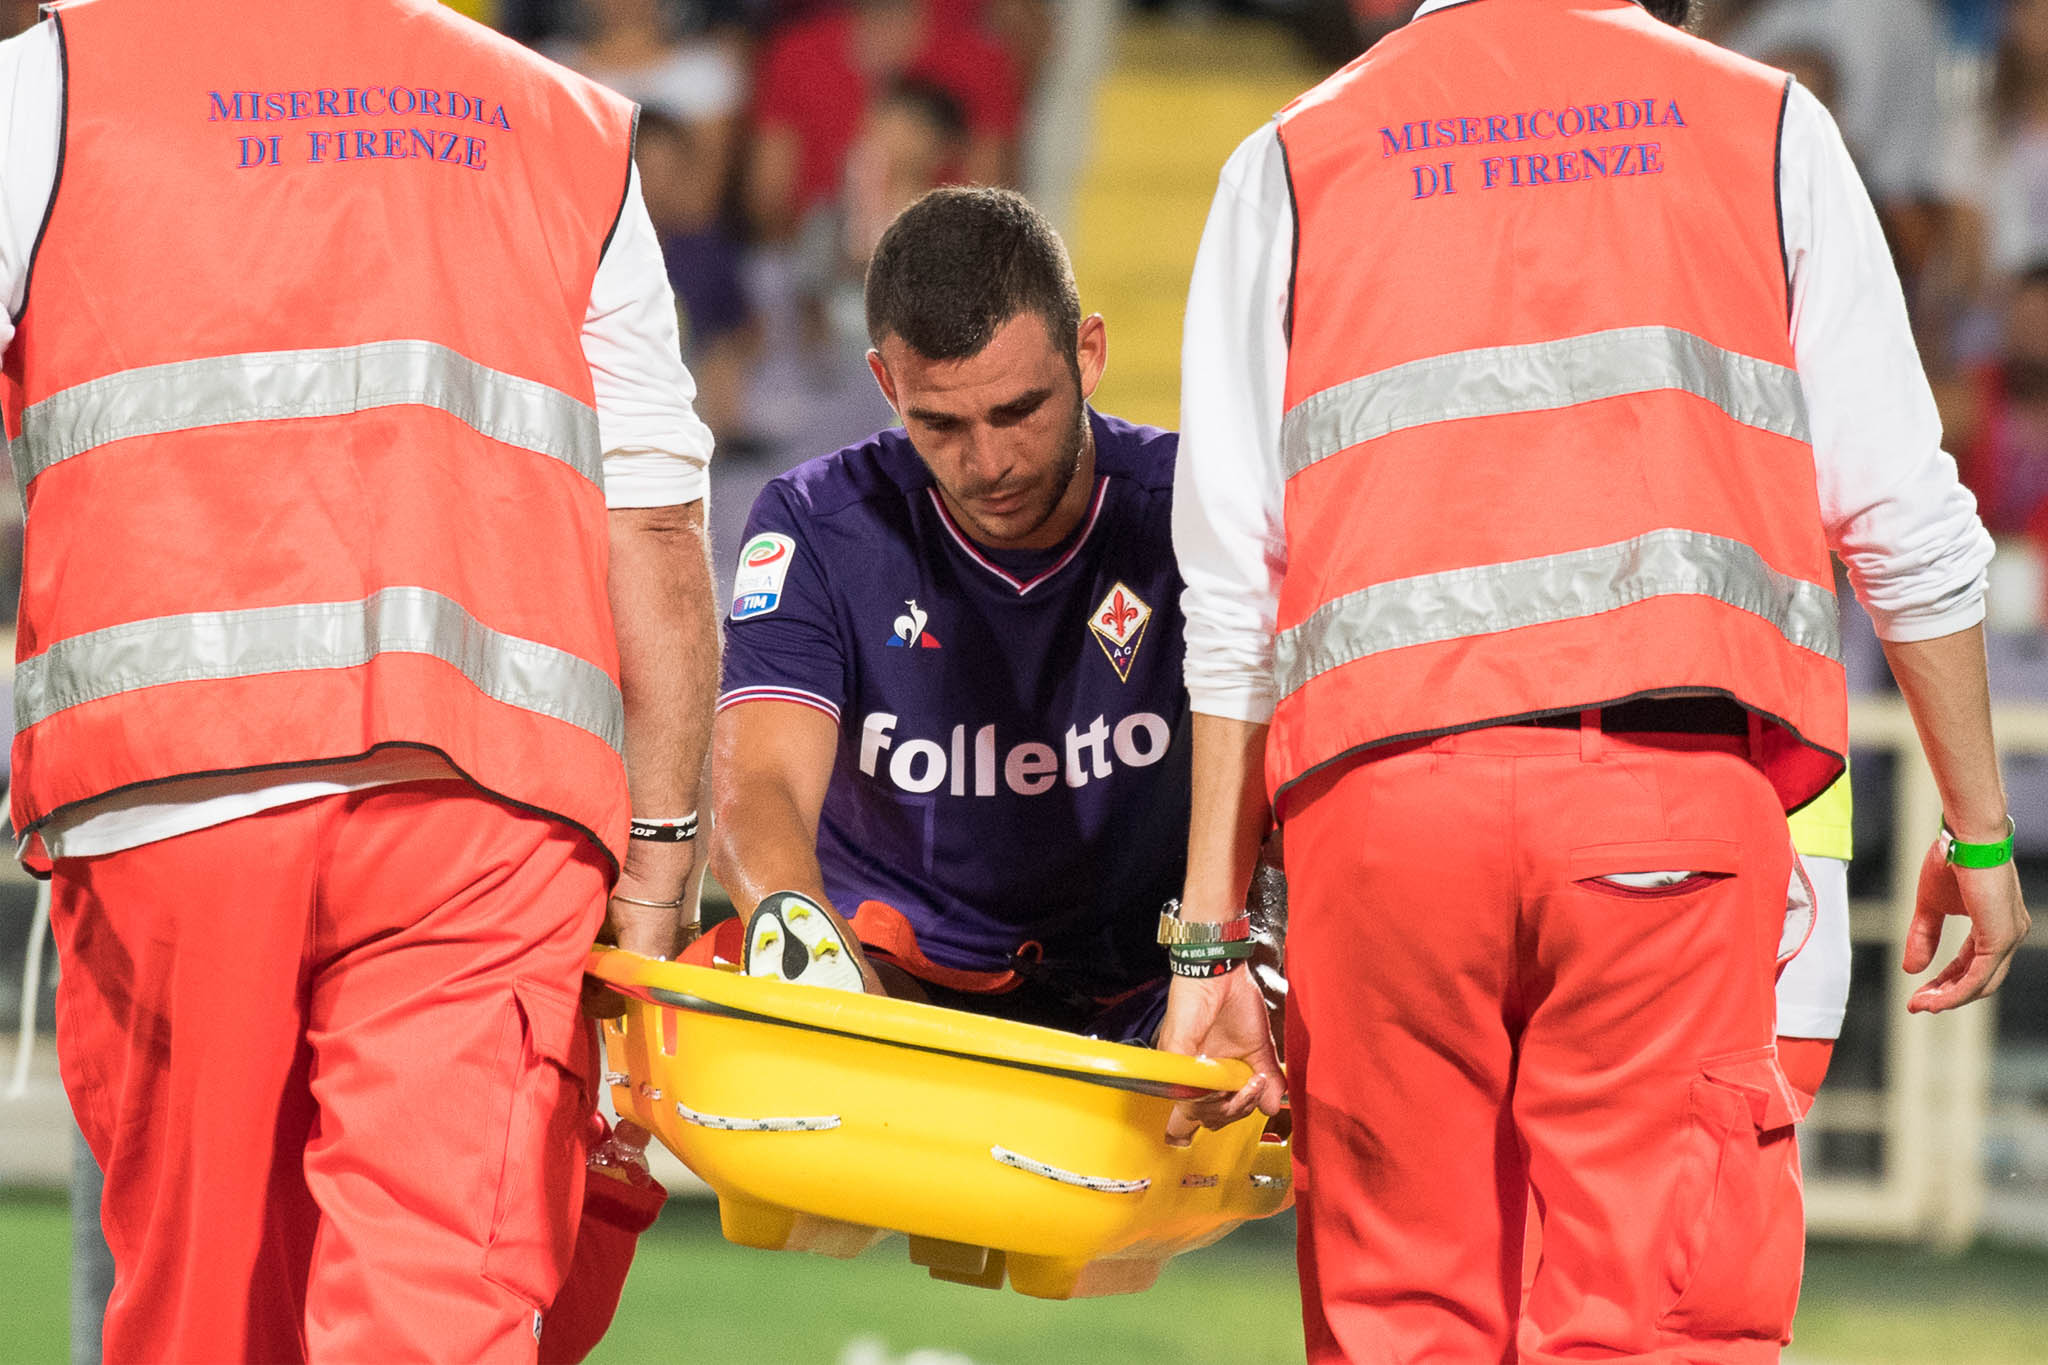 Fiorentina infortunata: Chiesa in dubbio, Thereau e Laurini rischiano la panchina, out Badelj…